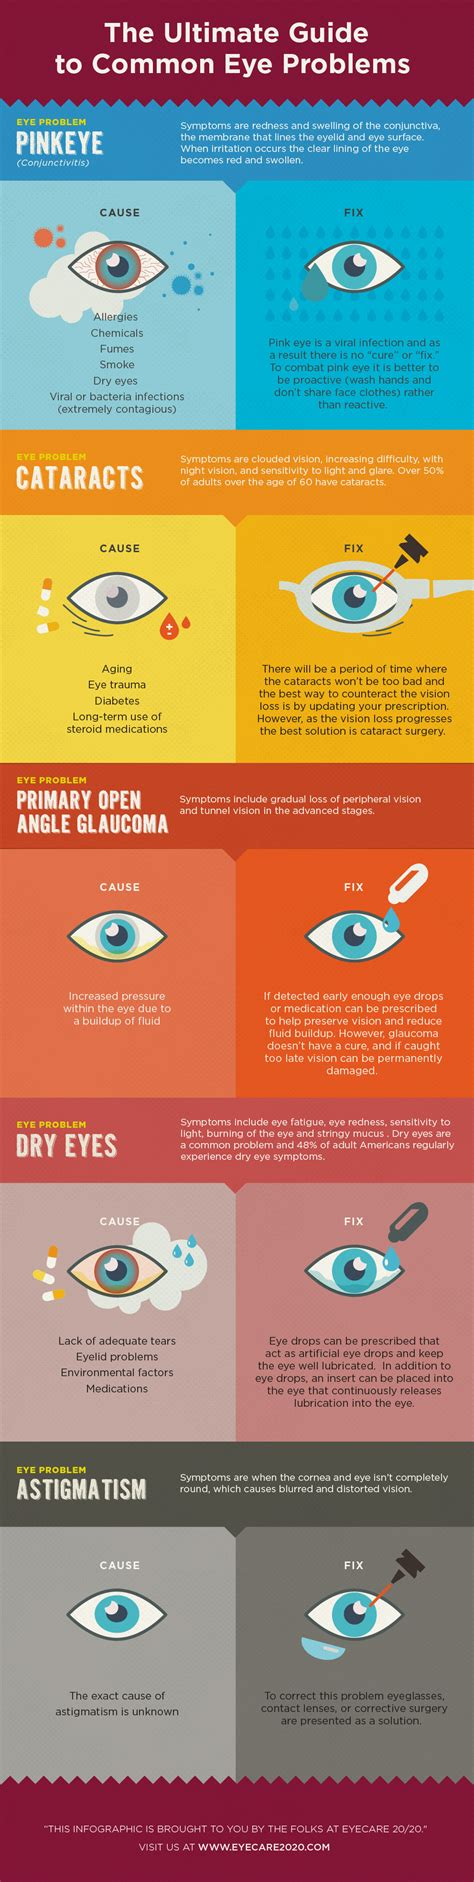 The Ultimate Guide To Common Eye Problems Infographic